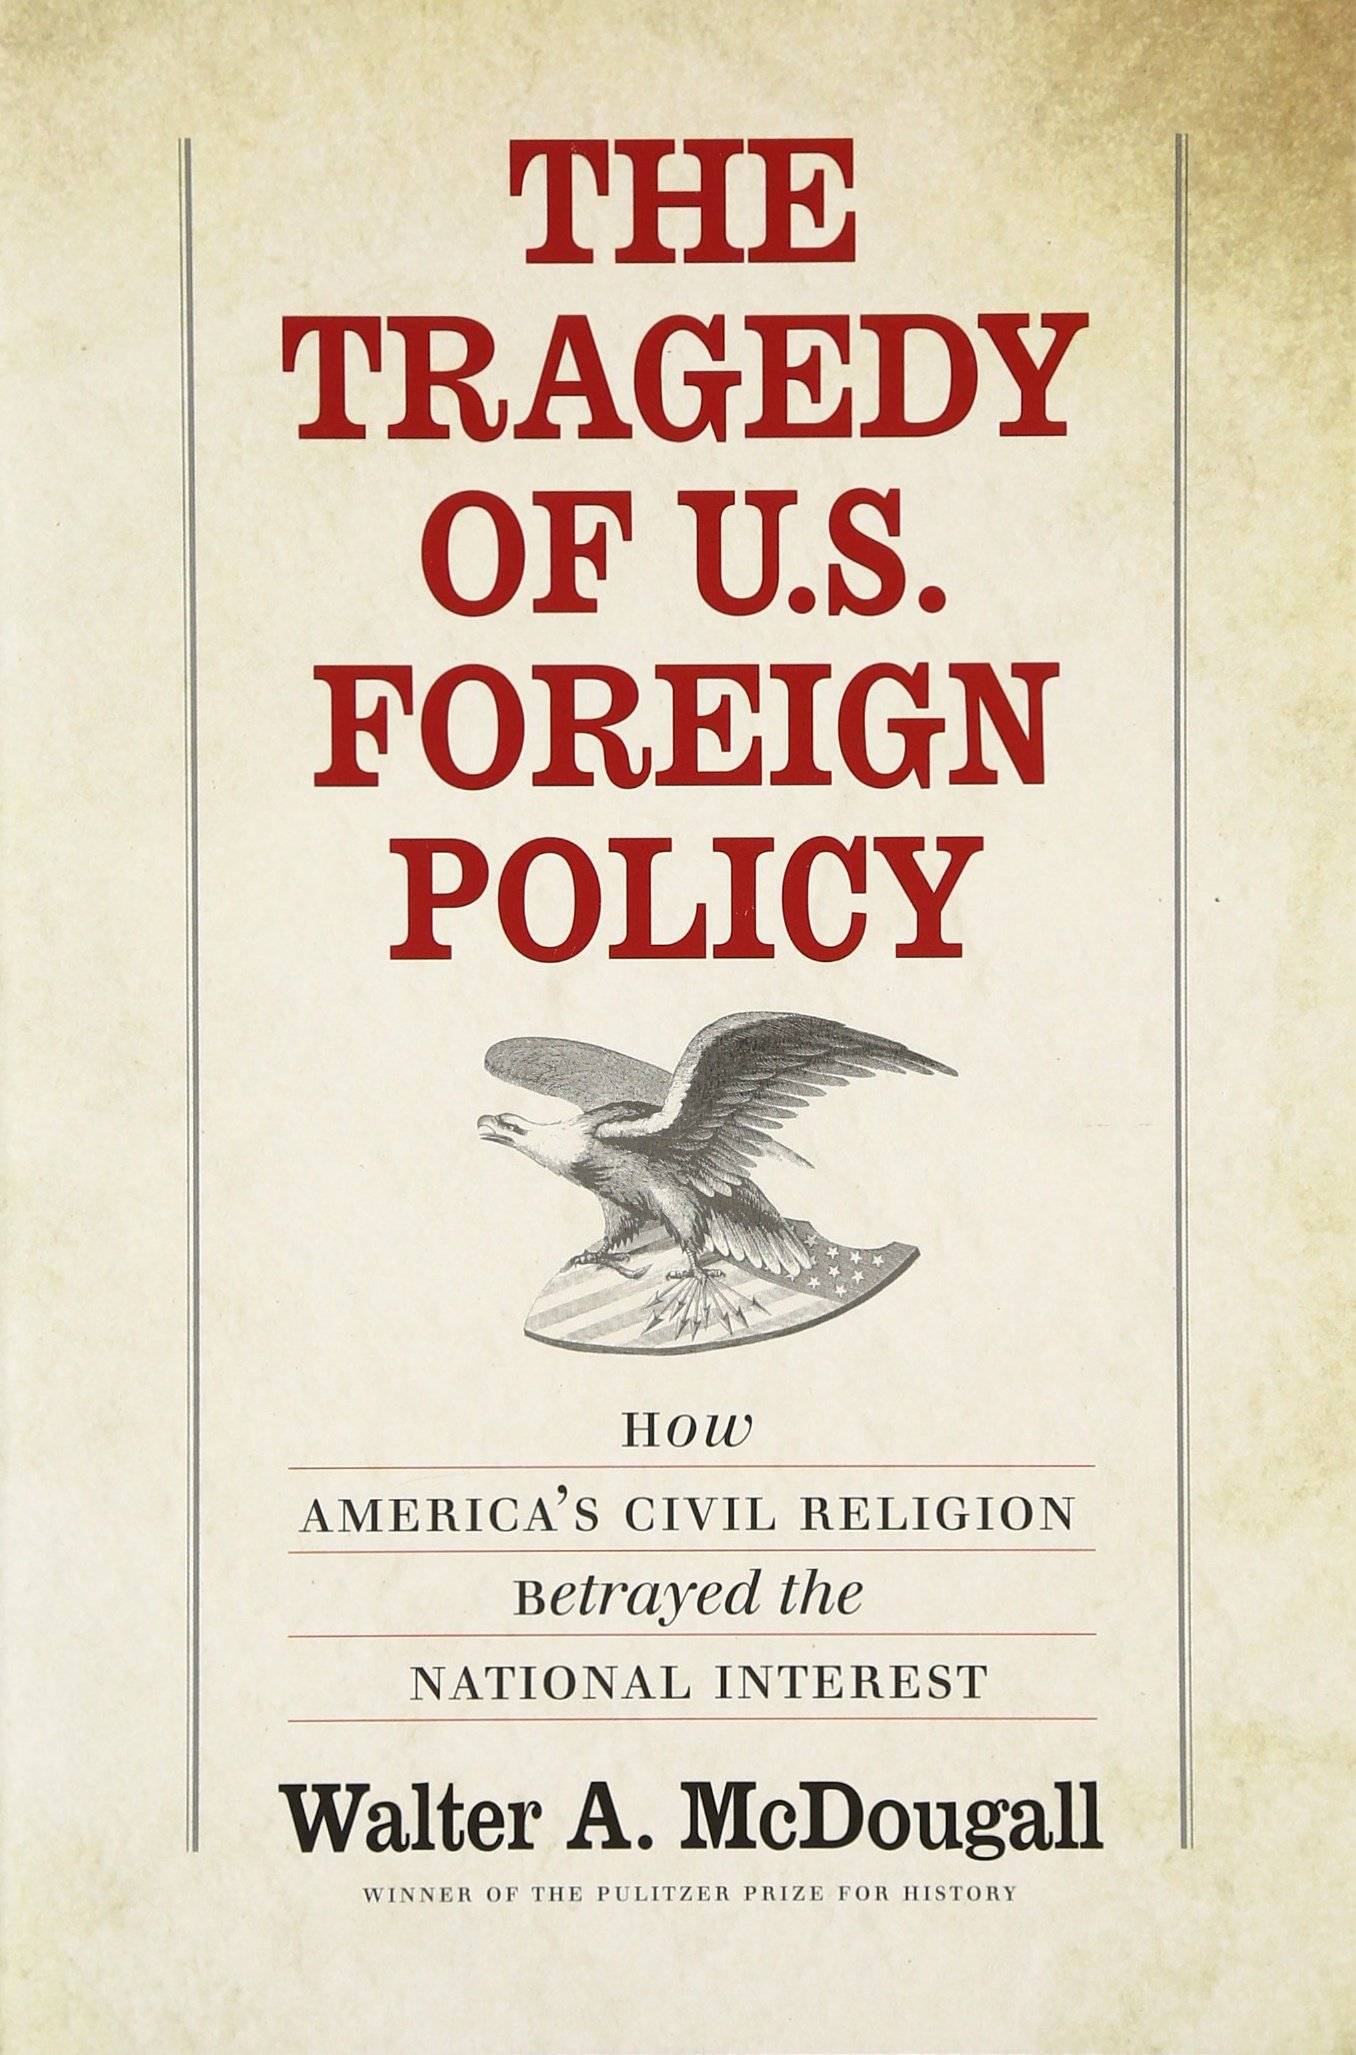 The Tragedy of U.S. Foreign Policy: How America's Civil Religion Betrayed the National Interest pdf